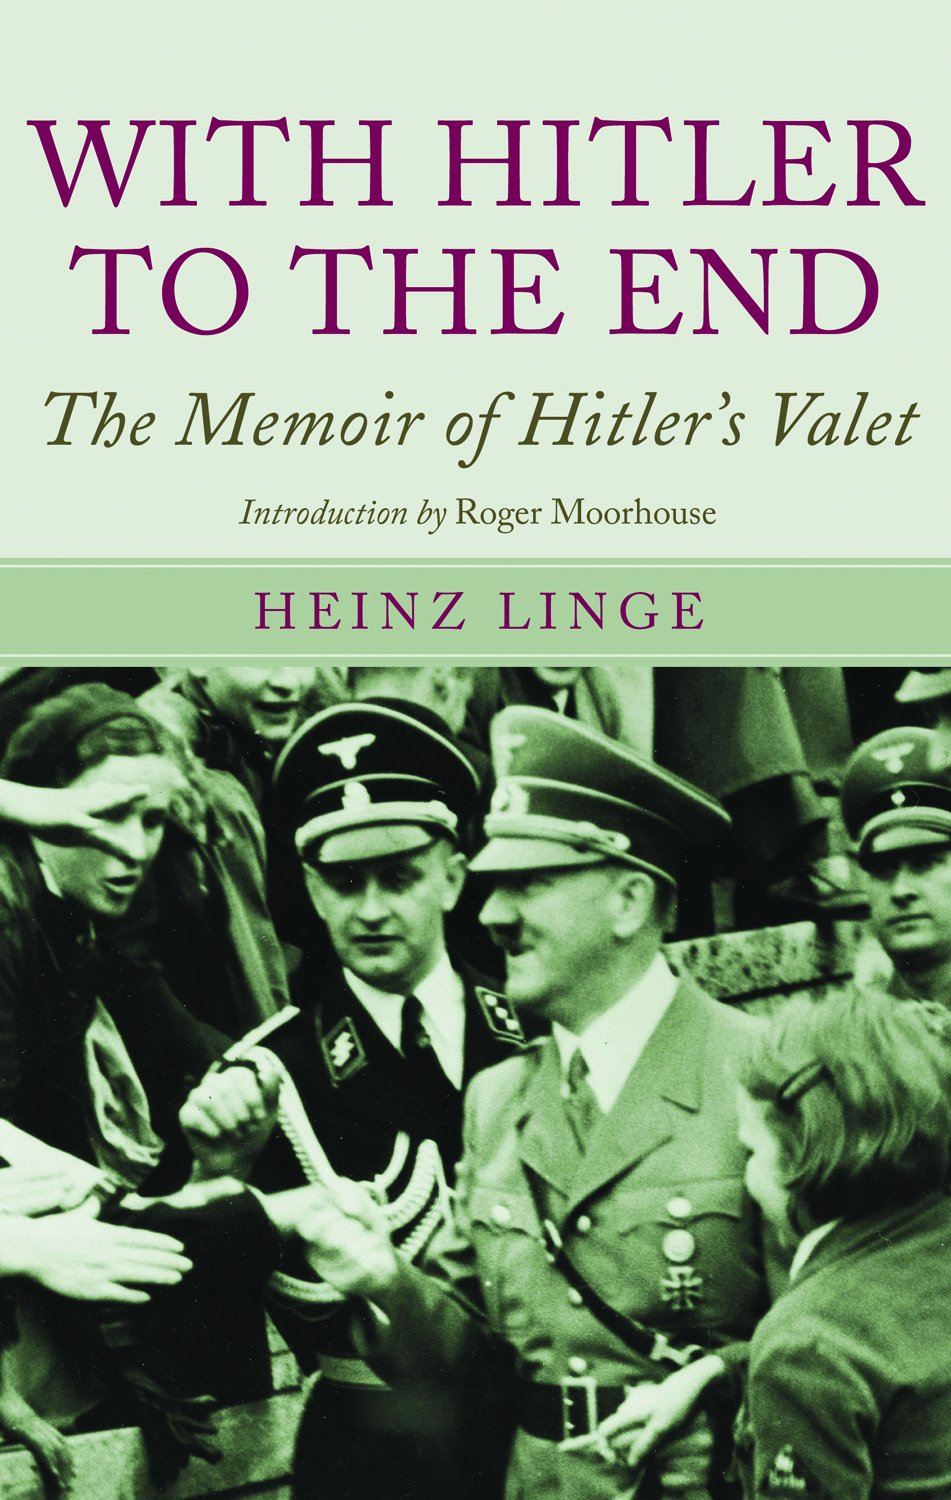 With Hitler To The End: The Memoirs of Hitler's Valet By: Heinz Linge,Roger Moorhouse